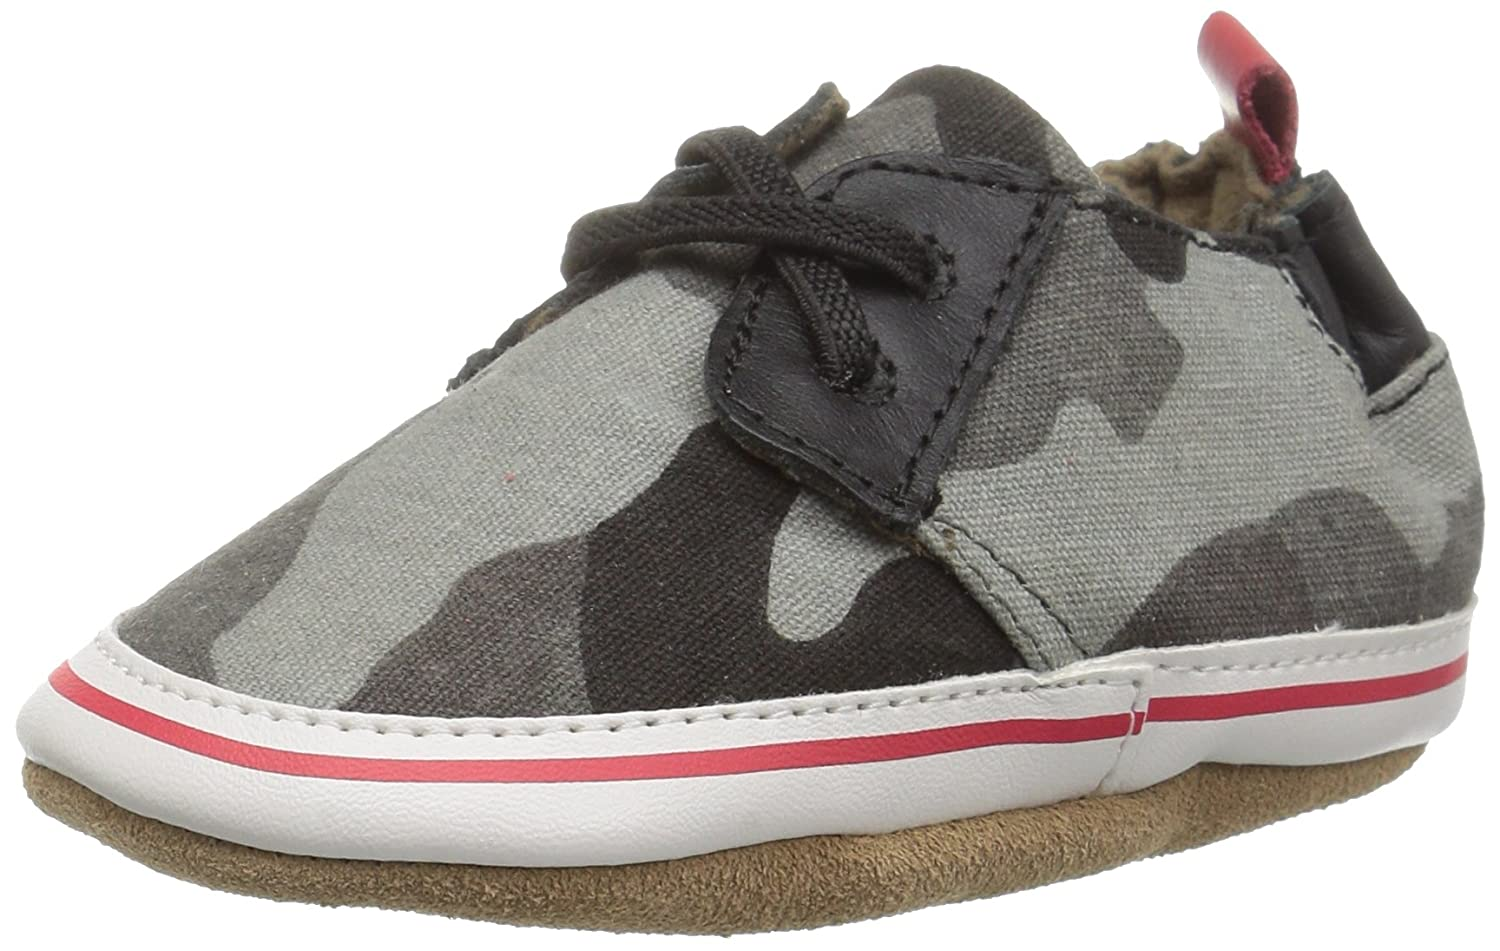 Robeez Boys' Casual Sneaker Soft Soles Stylish Steve - K